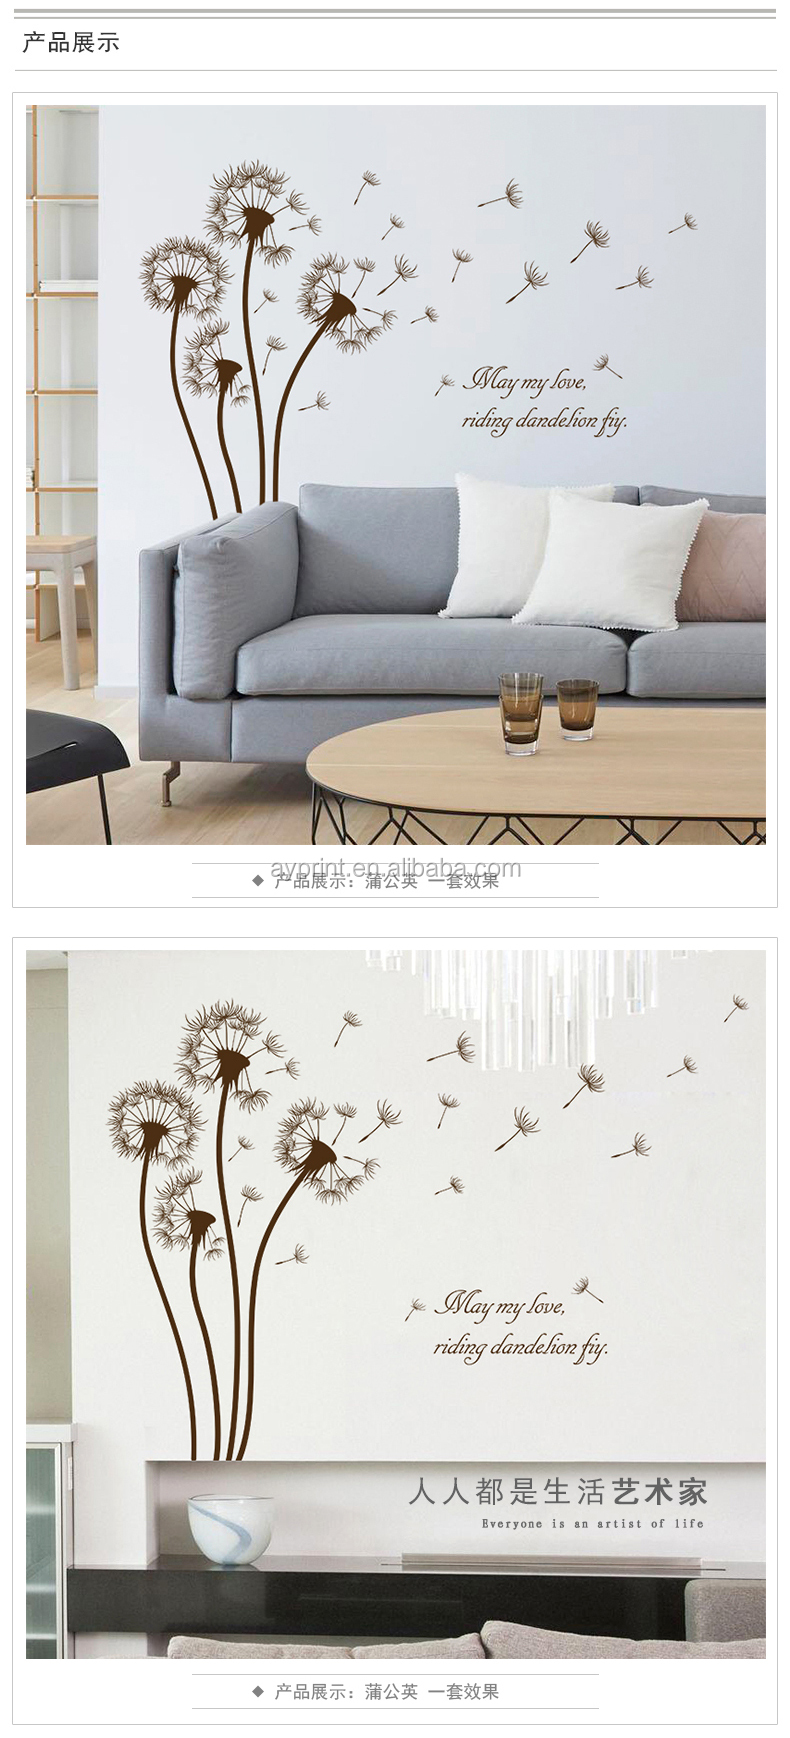 Sk7062 Flower Plant Living Room Diy Dandelion Removable Wall Stickers Home Decor Buy Removable Wall Stickers Home Decor Dandelion Removable Wall